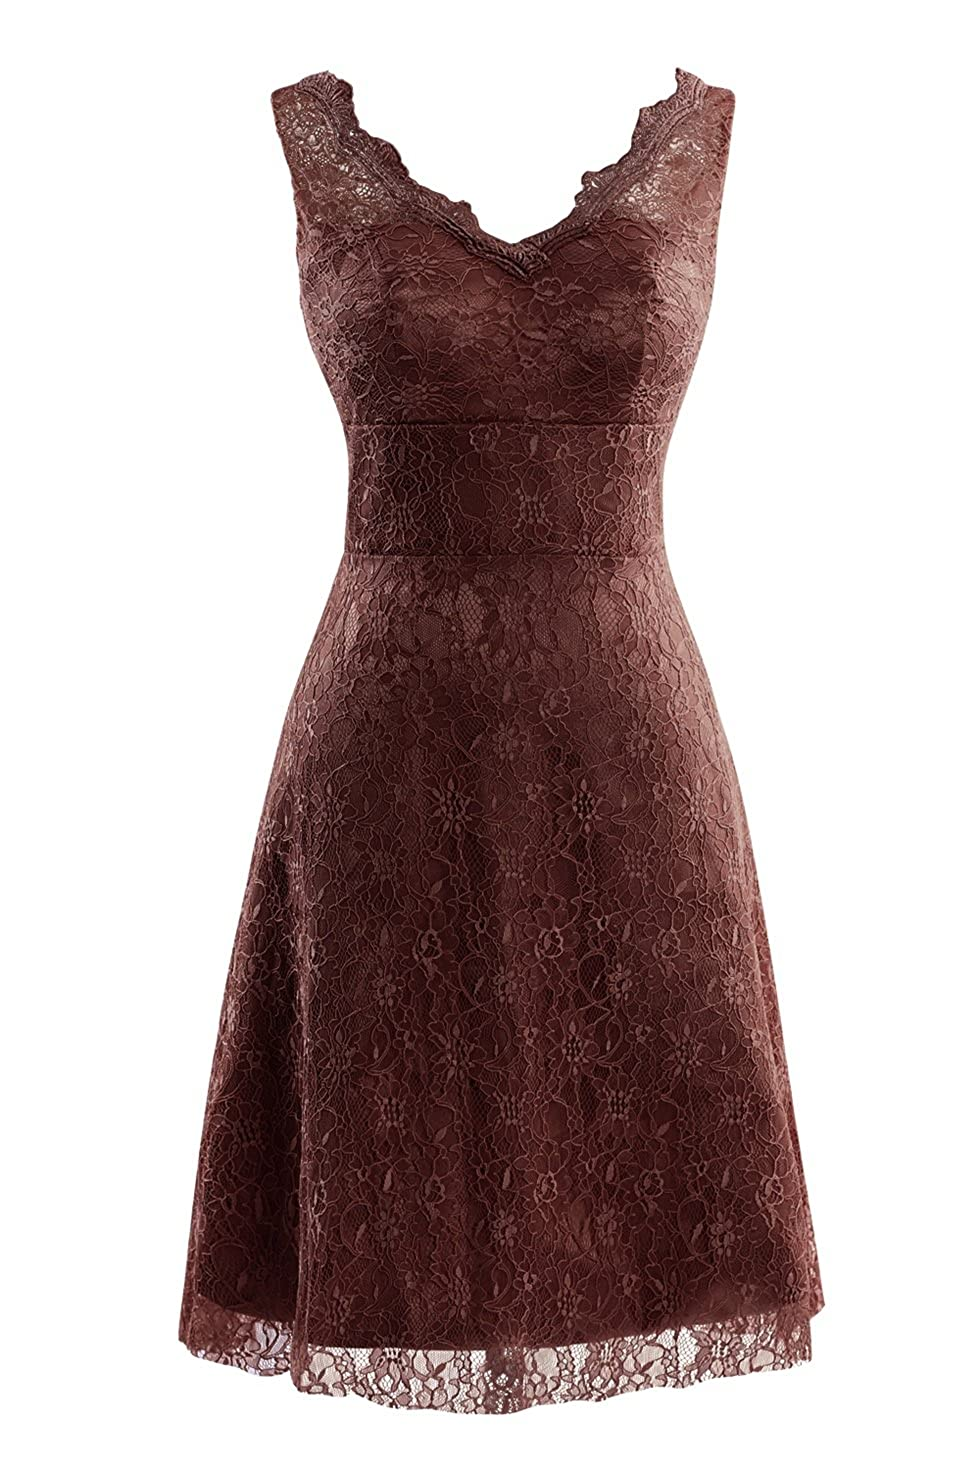 Chocolate Bess Bridal Women's V Neck Lace Knee Length Prom Party Dresses